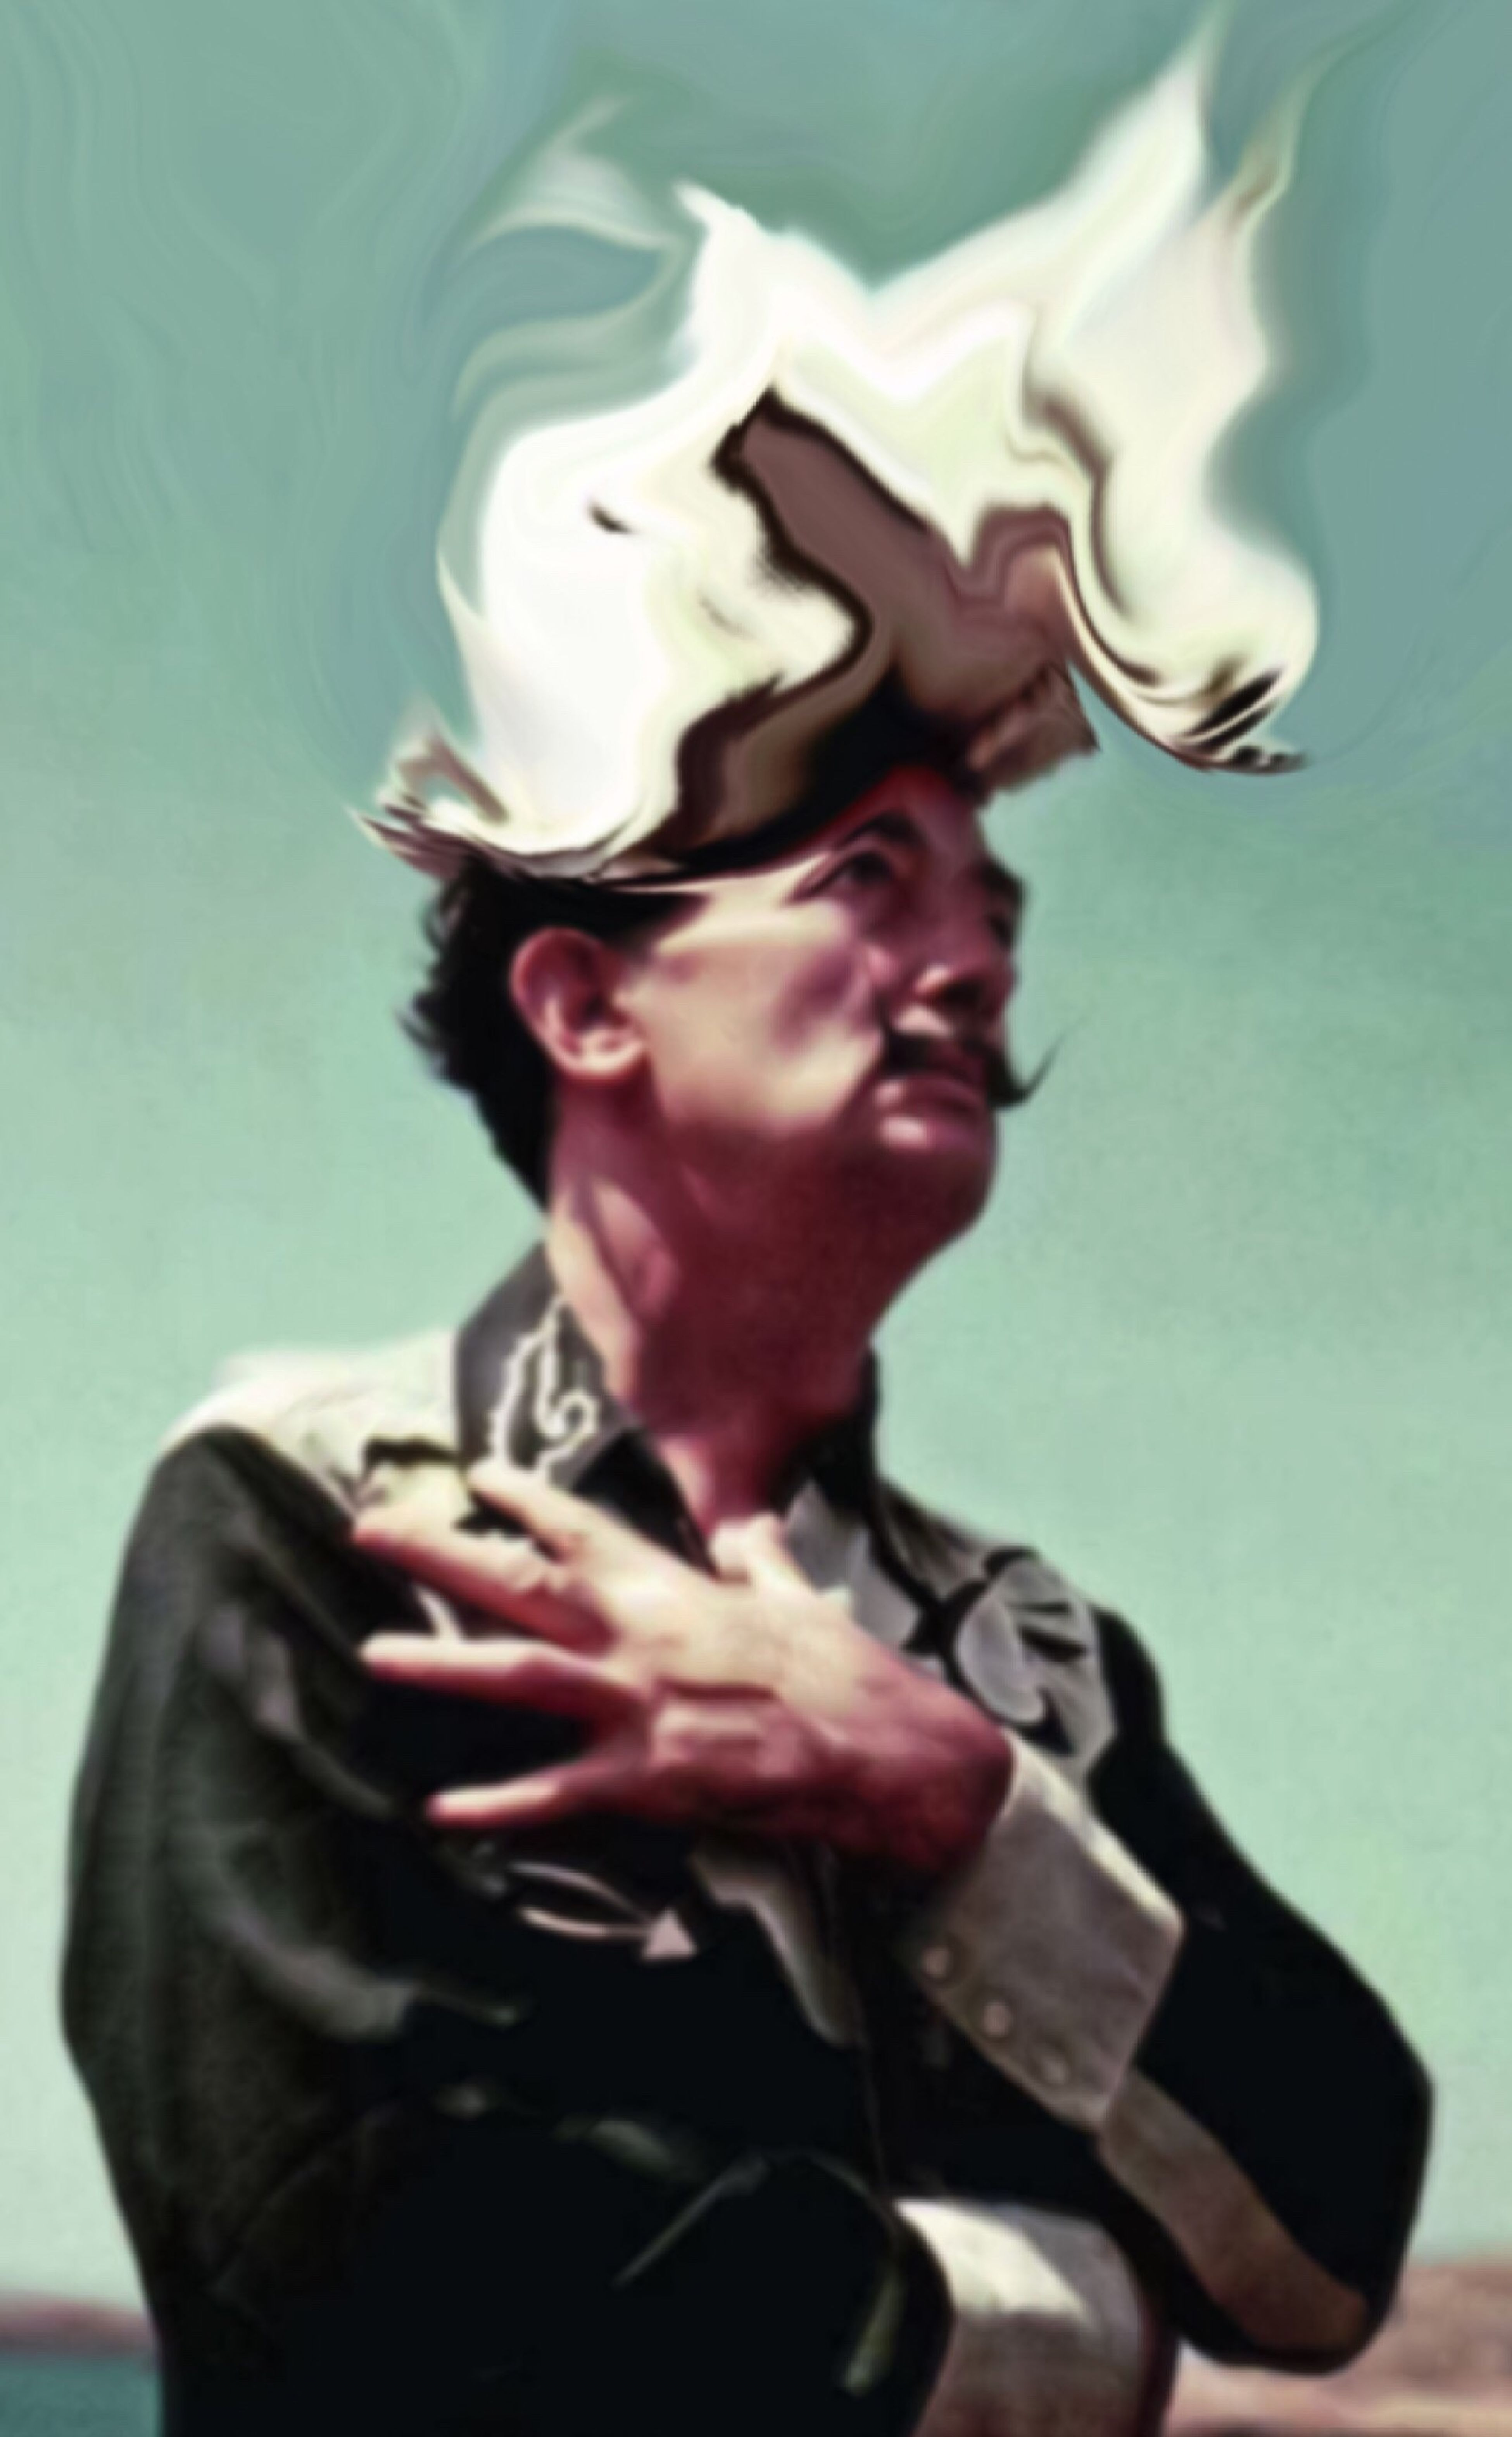 What's On Dali's Head Never Forgotten  Facial Experiments Photographic Approximation Surrealism